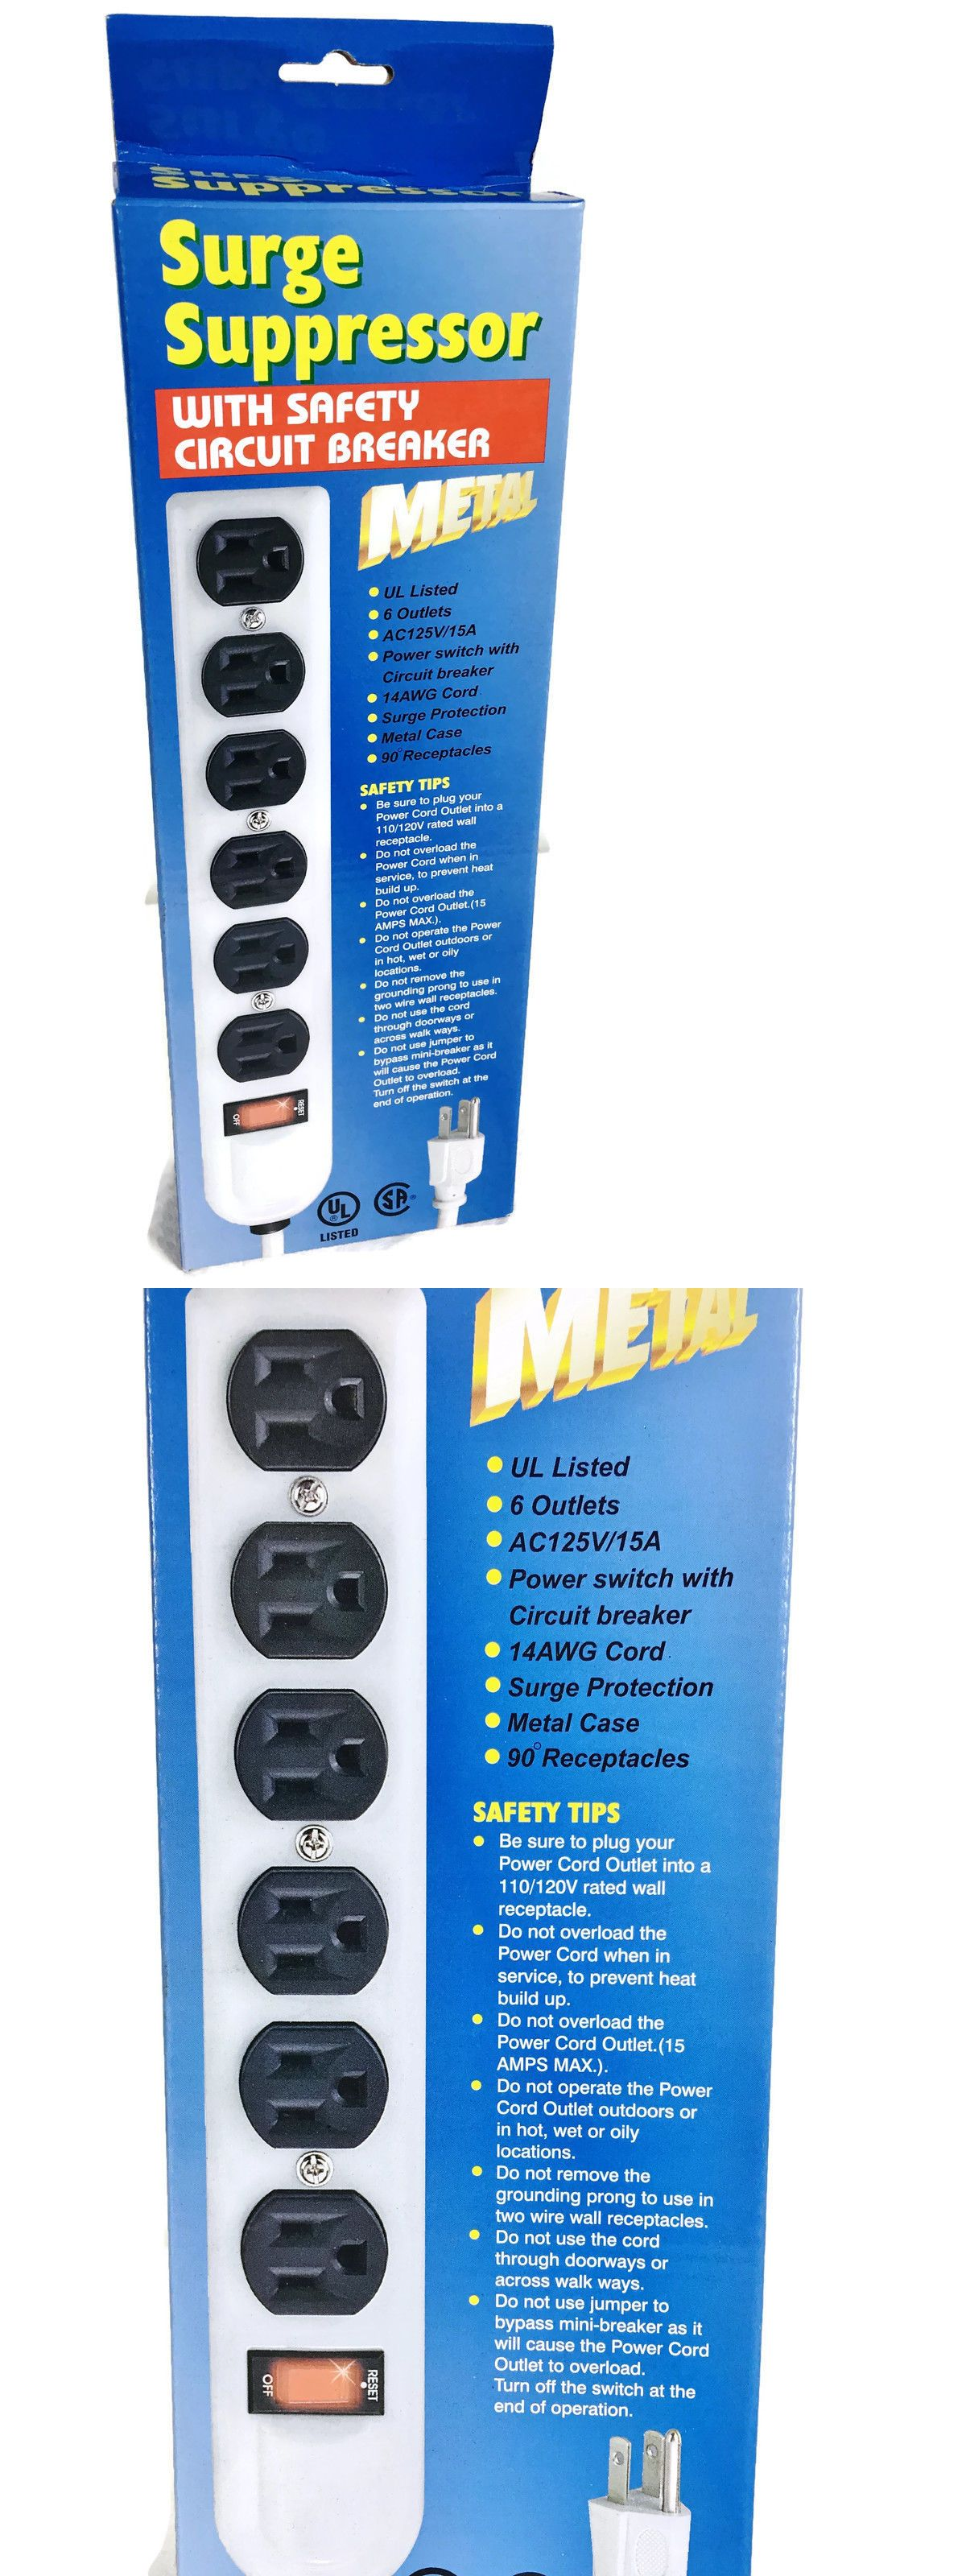 Power Protection Distribution 86722 New In The Box Surge Protector Suppressor 6 Outlets 125v 15a Metal Case B Surge Protector Surge Protection Ebay